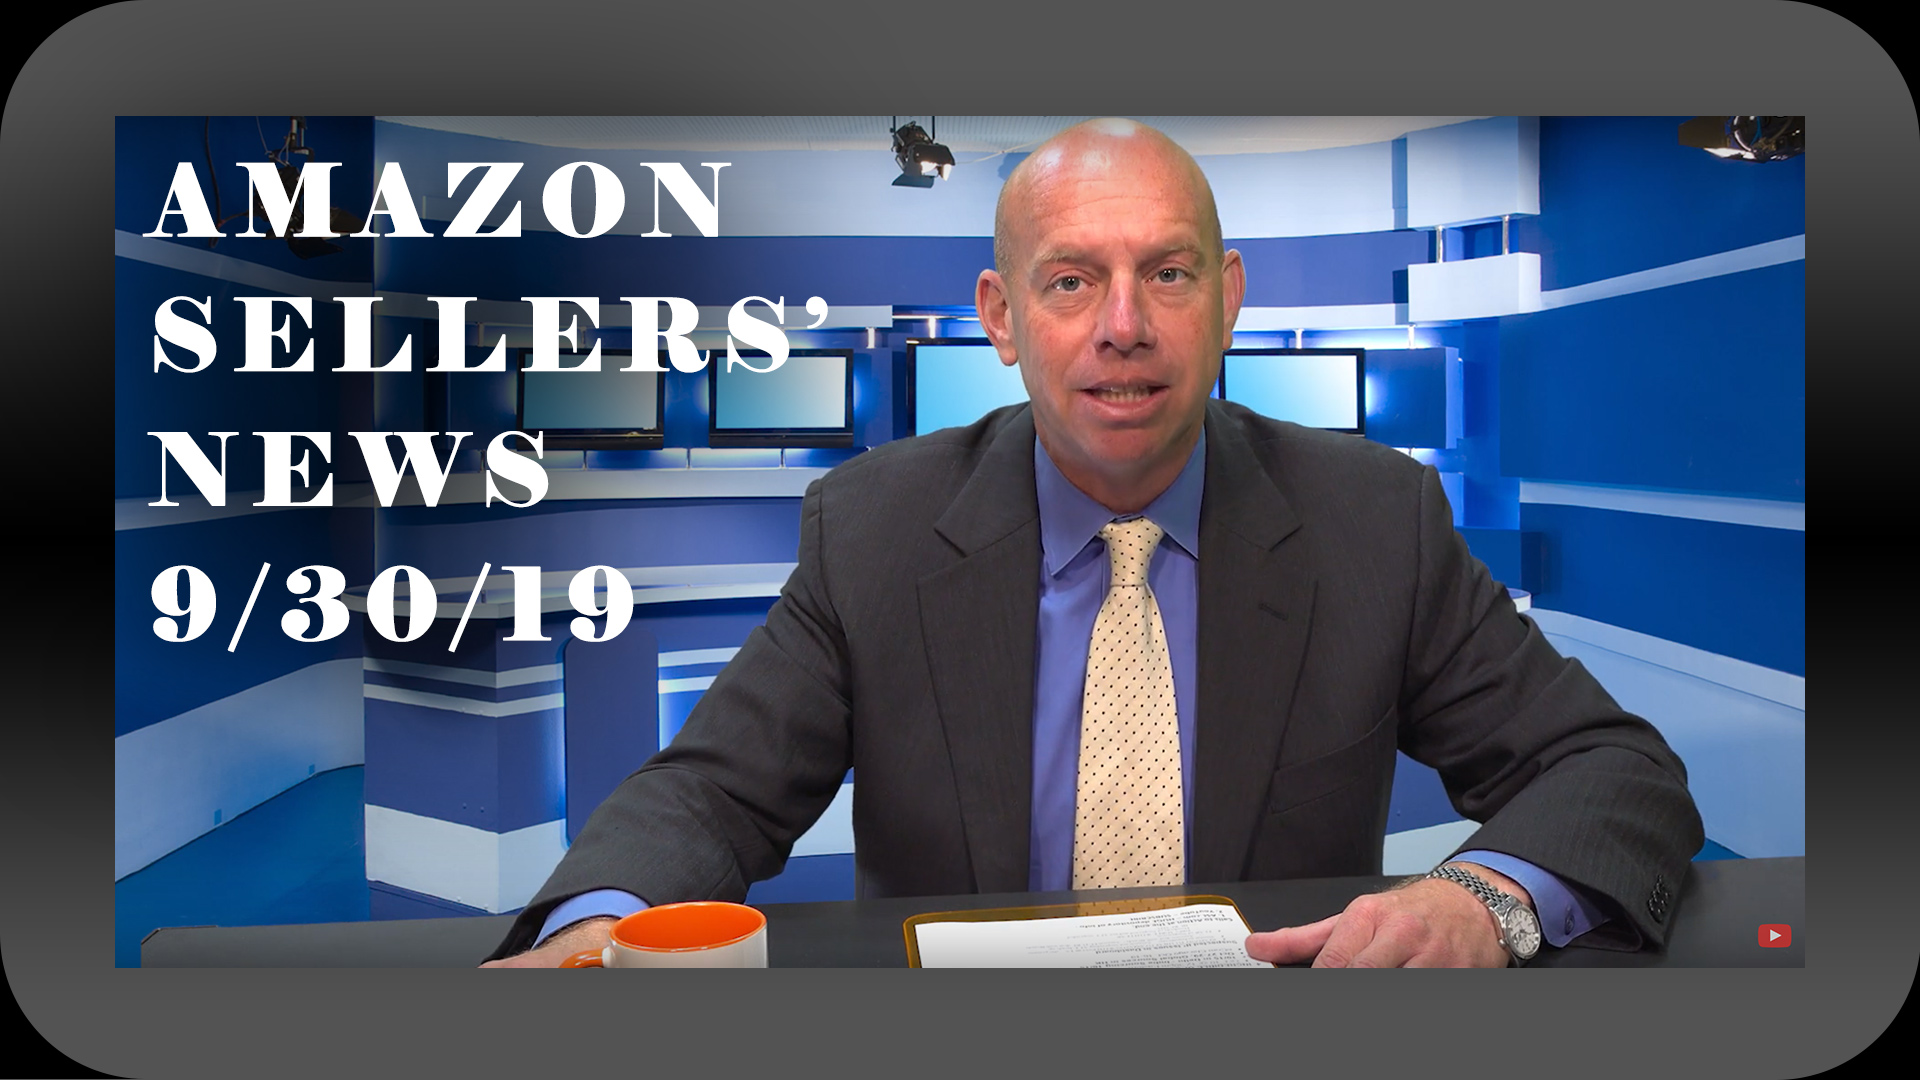 Amazon Restricted Product Suspensions & Multiple IP Complaint Suspensions Increase For Sellers